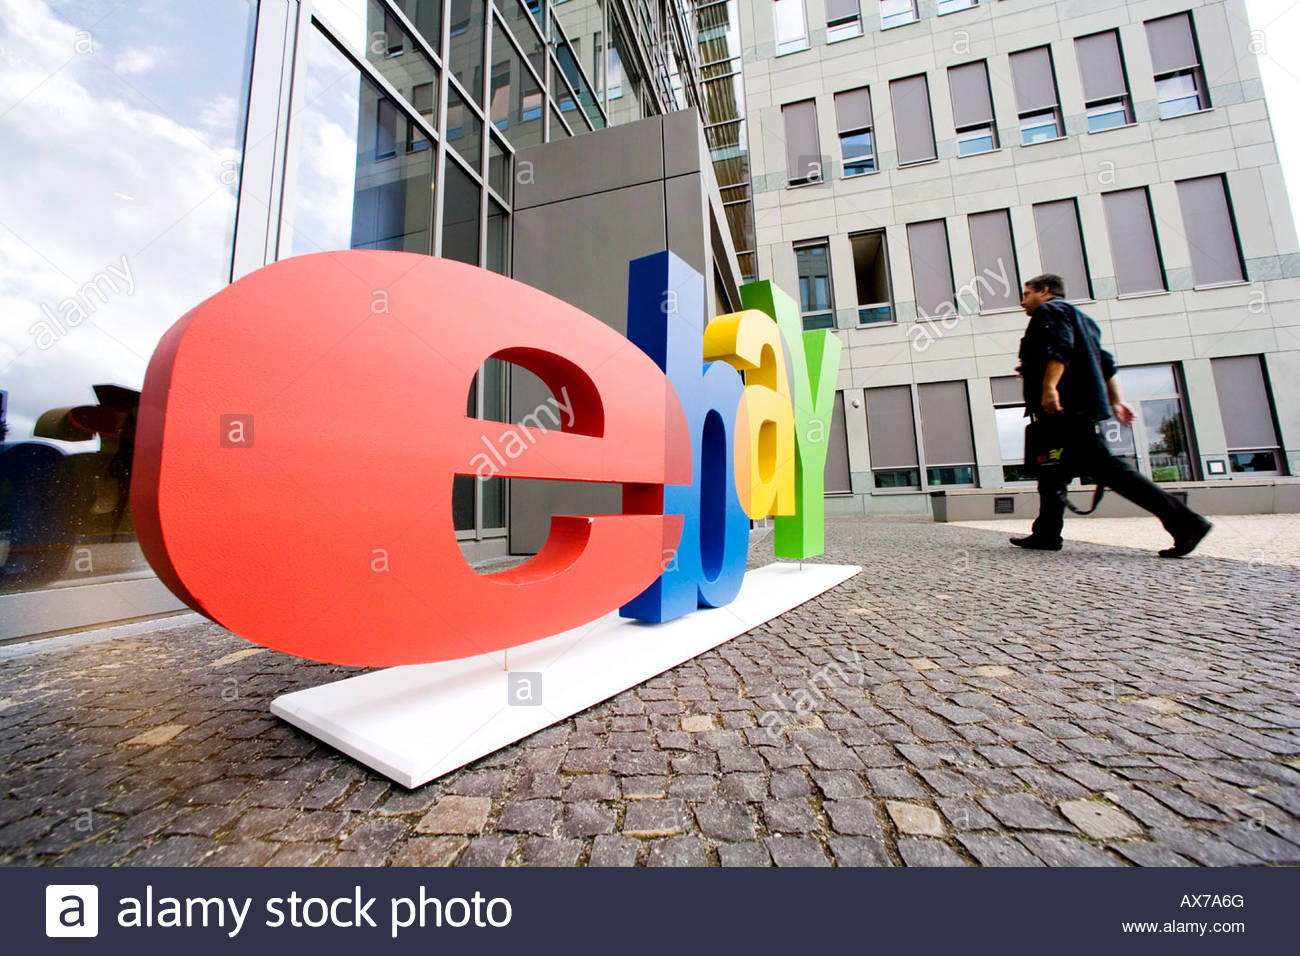 ebay head office. German Head Office Of Ebay - Stock Image